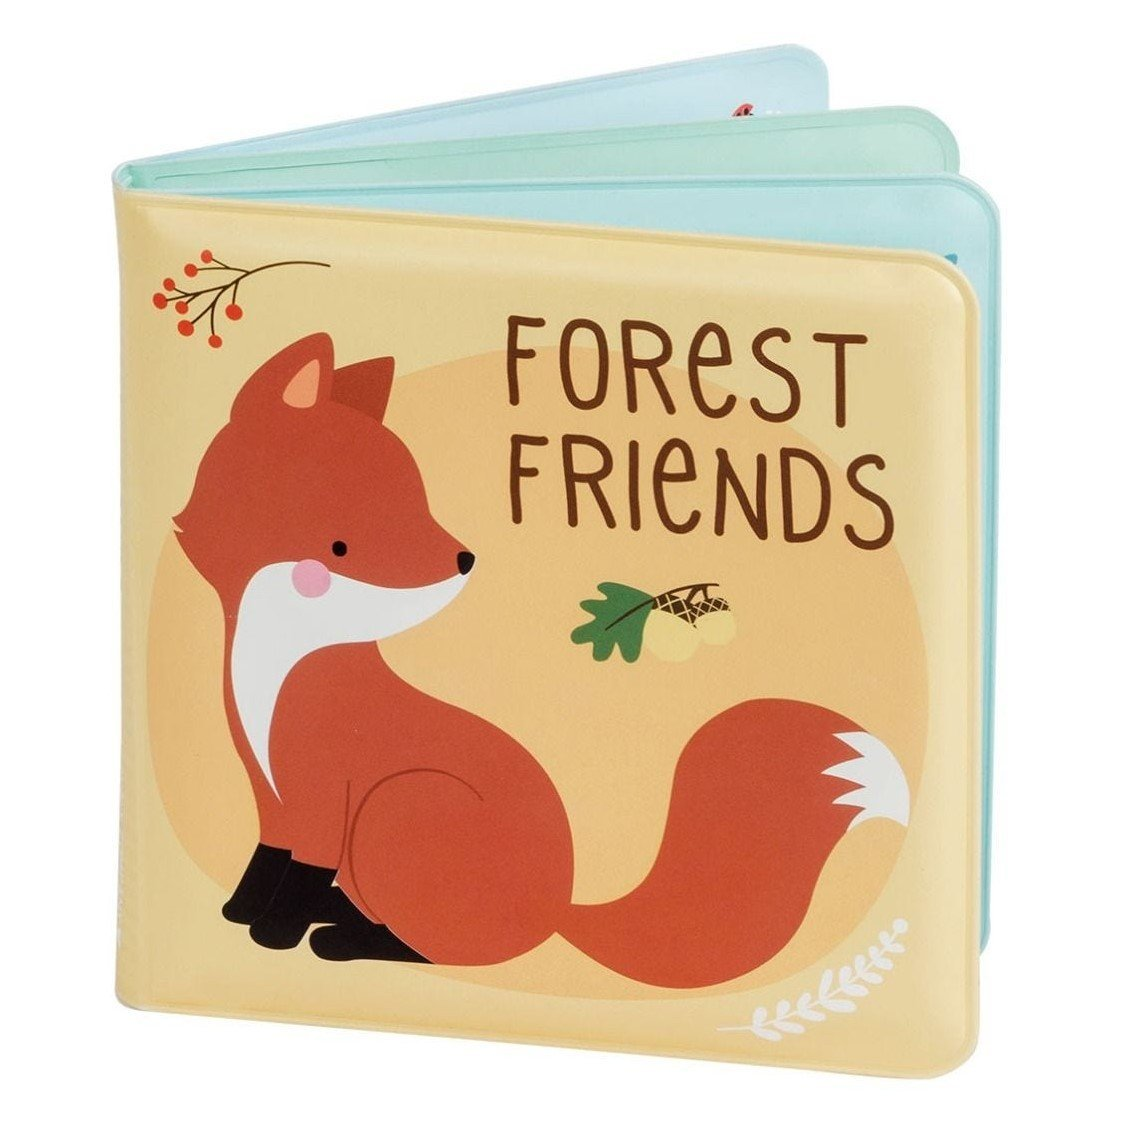 A Little Lovely Company Bath Book - Forest Friends